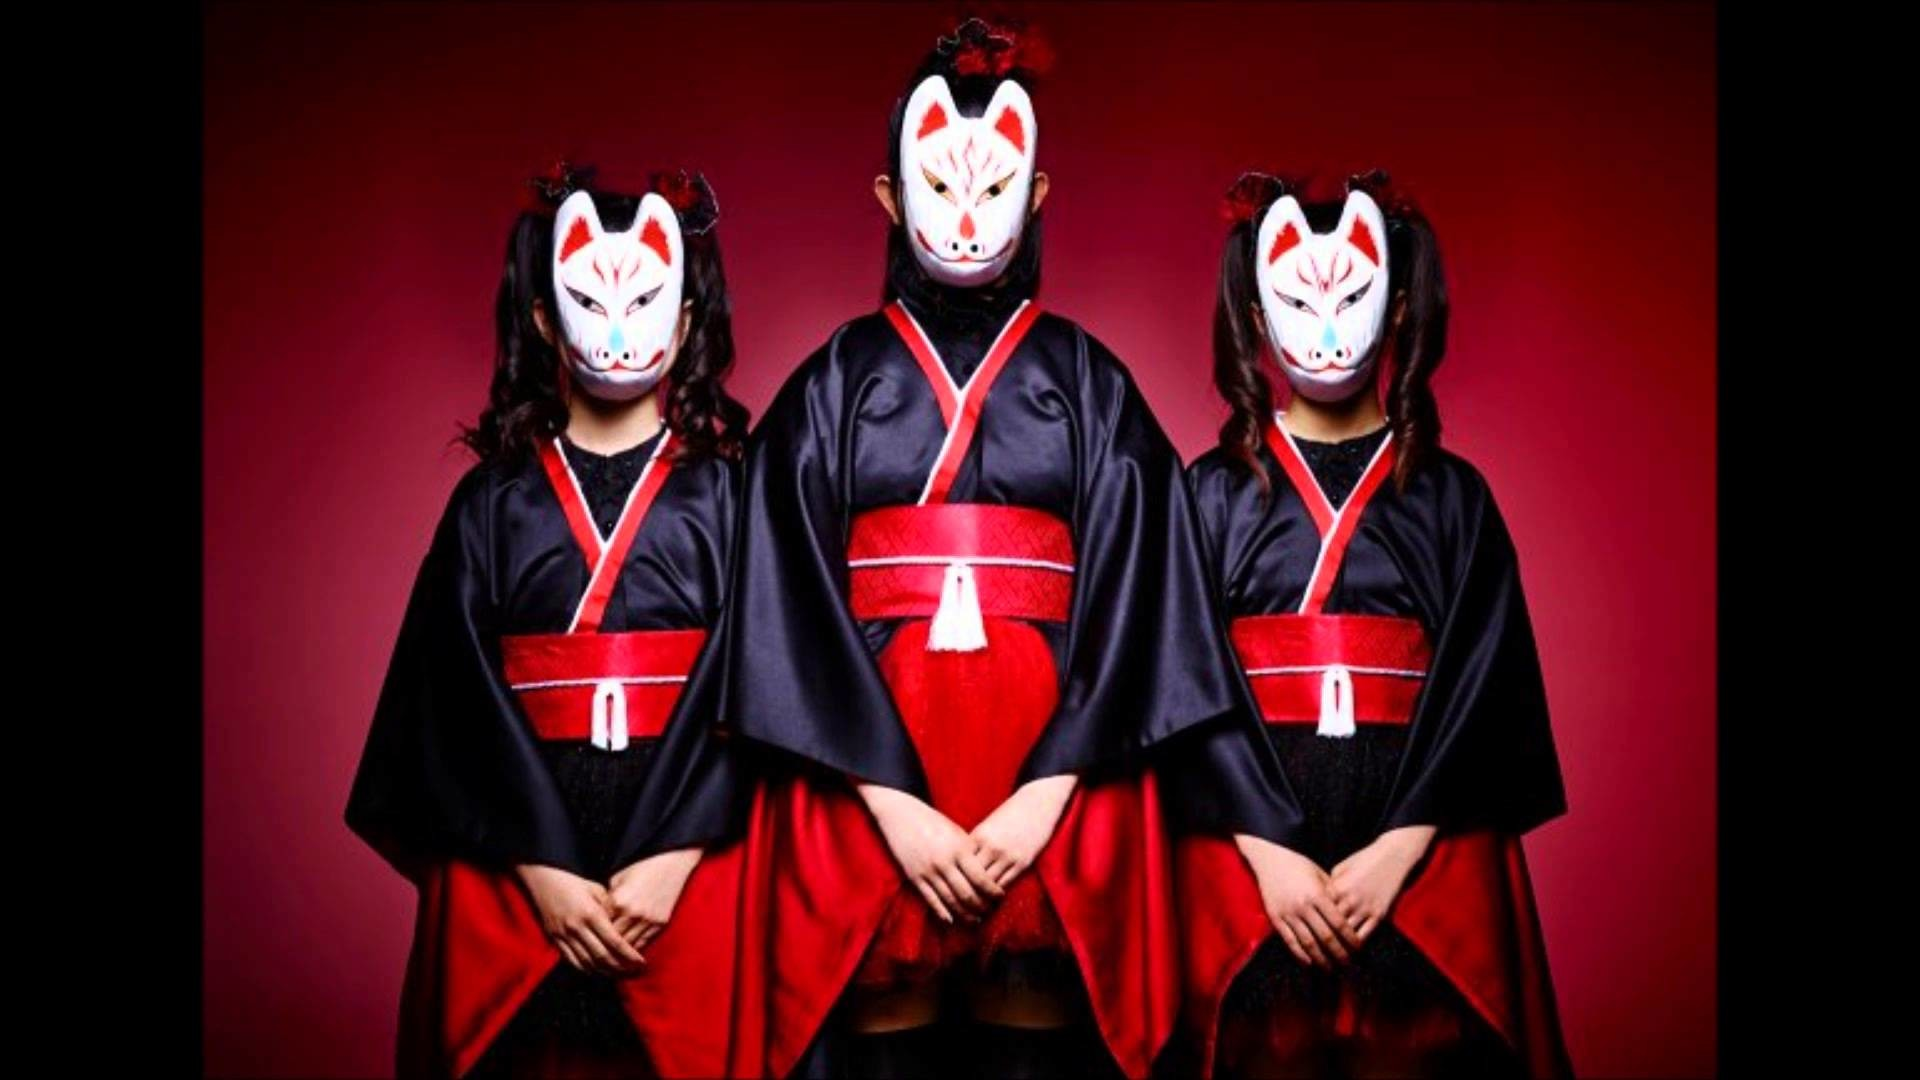 maxresdefault. babymetal-red_and_black.  babymetal_wallpaper_i_d_z_version_1_by_kirito_zoldyck-d5urzch